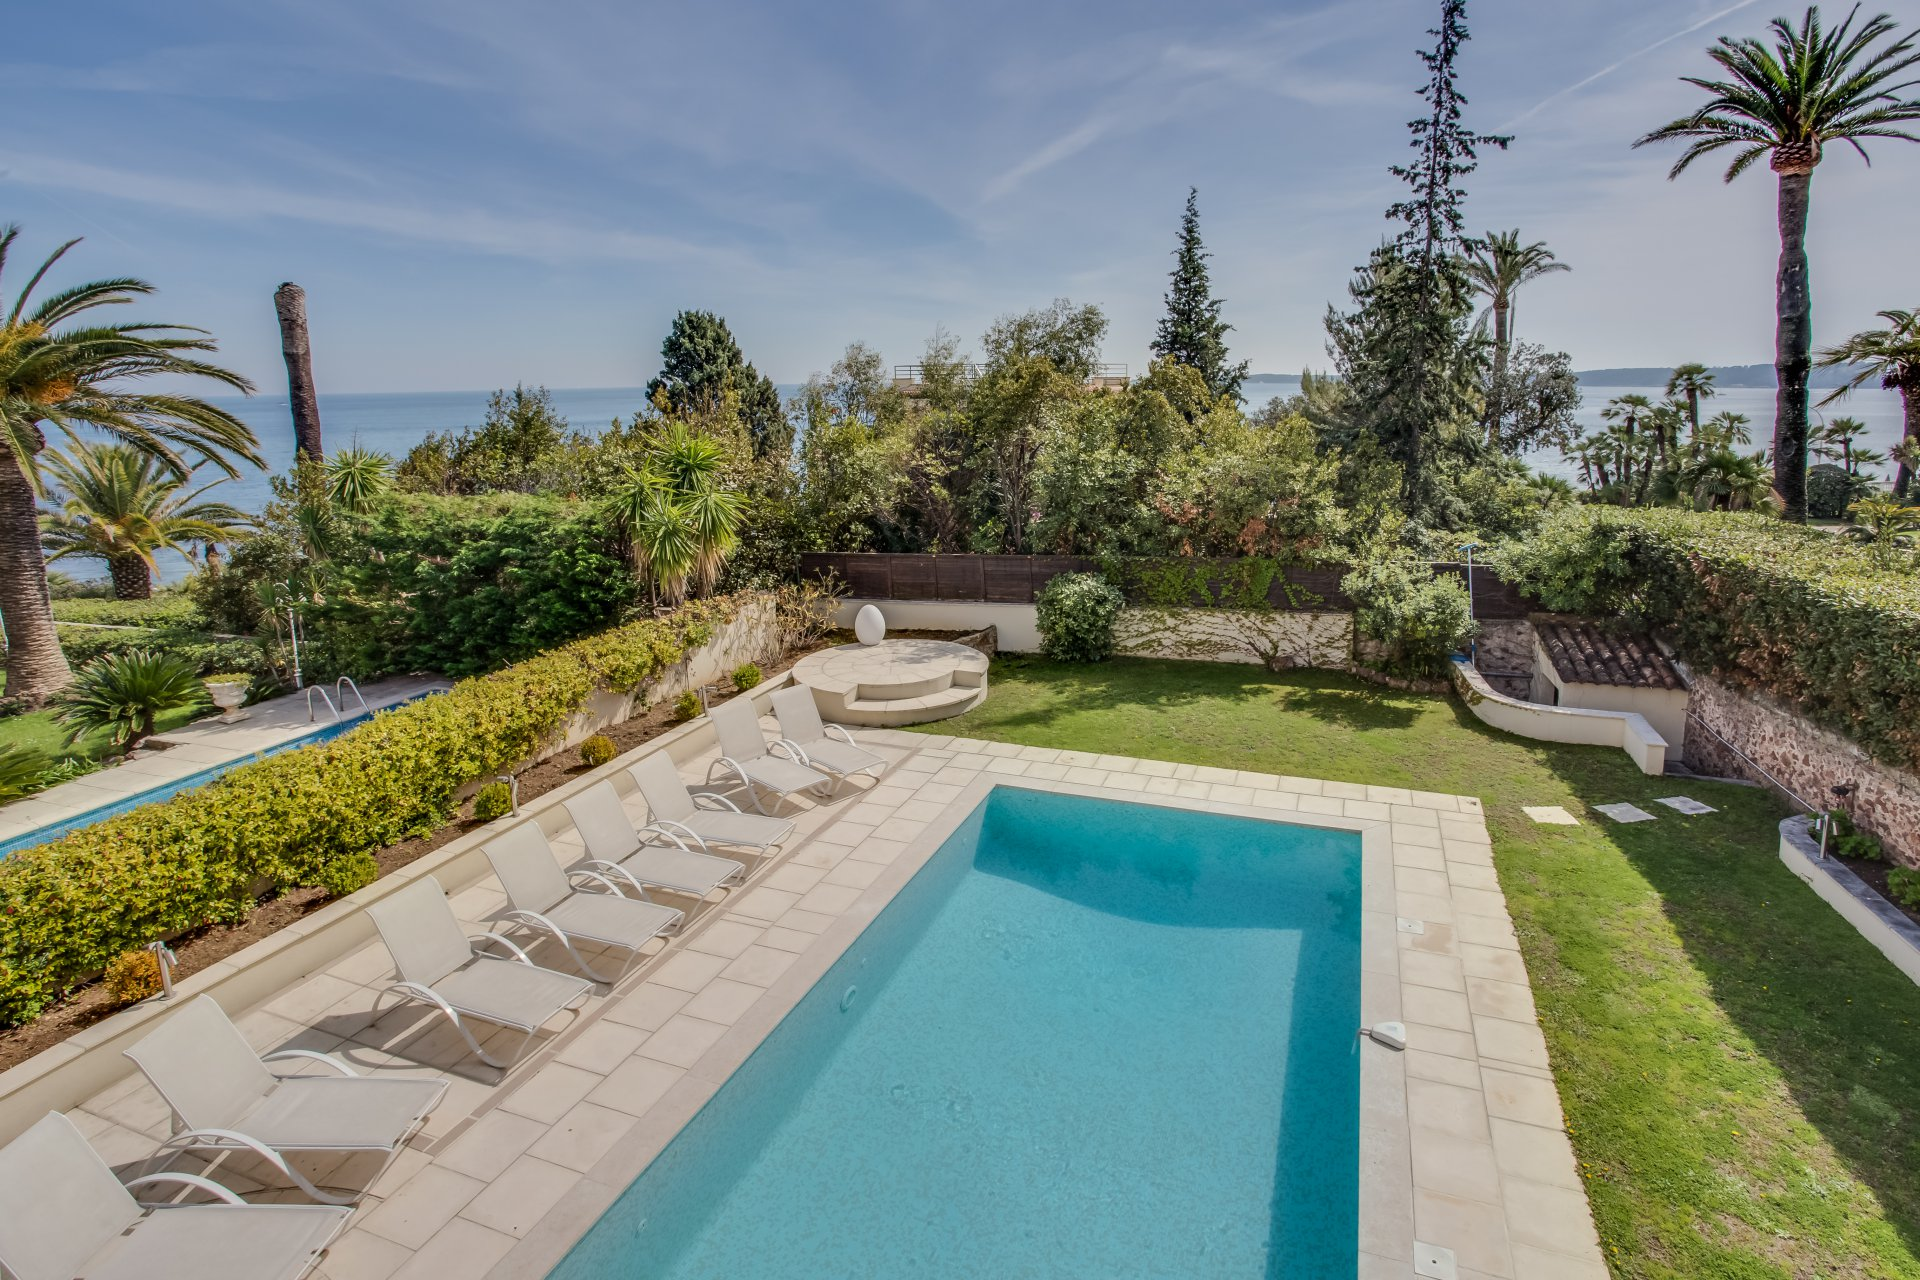 CANNES PALM BEACH - HOUSE WITH SWIMMING POOL